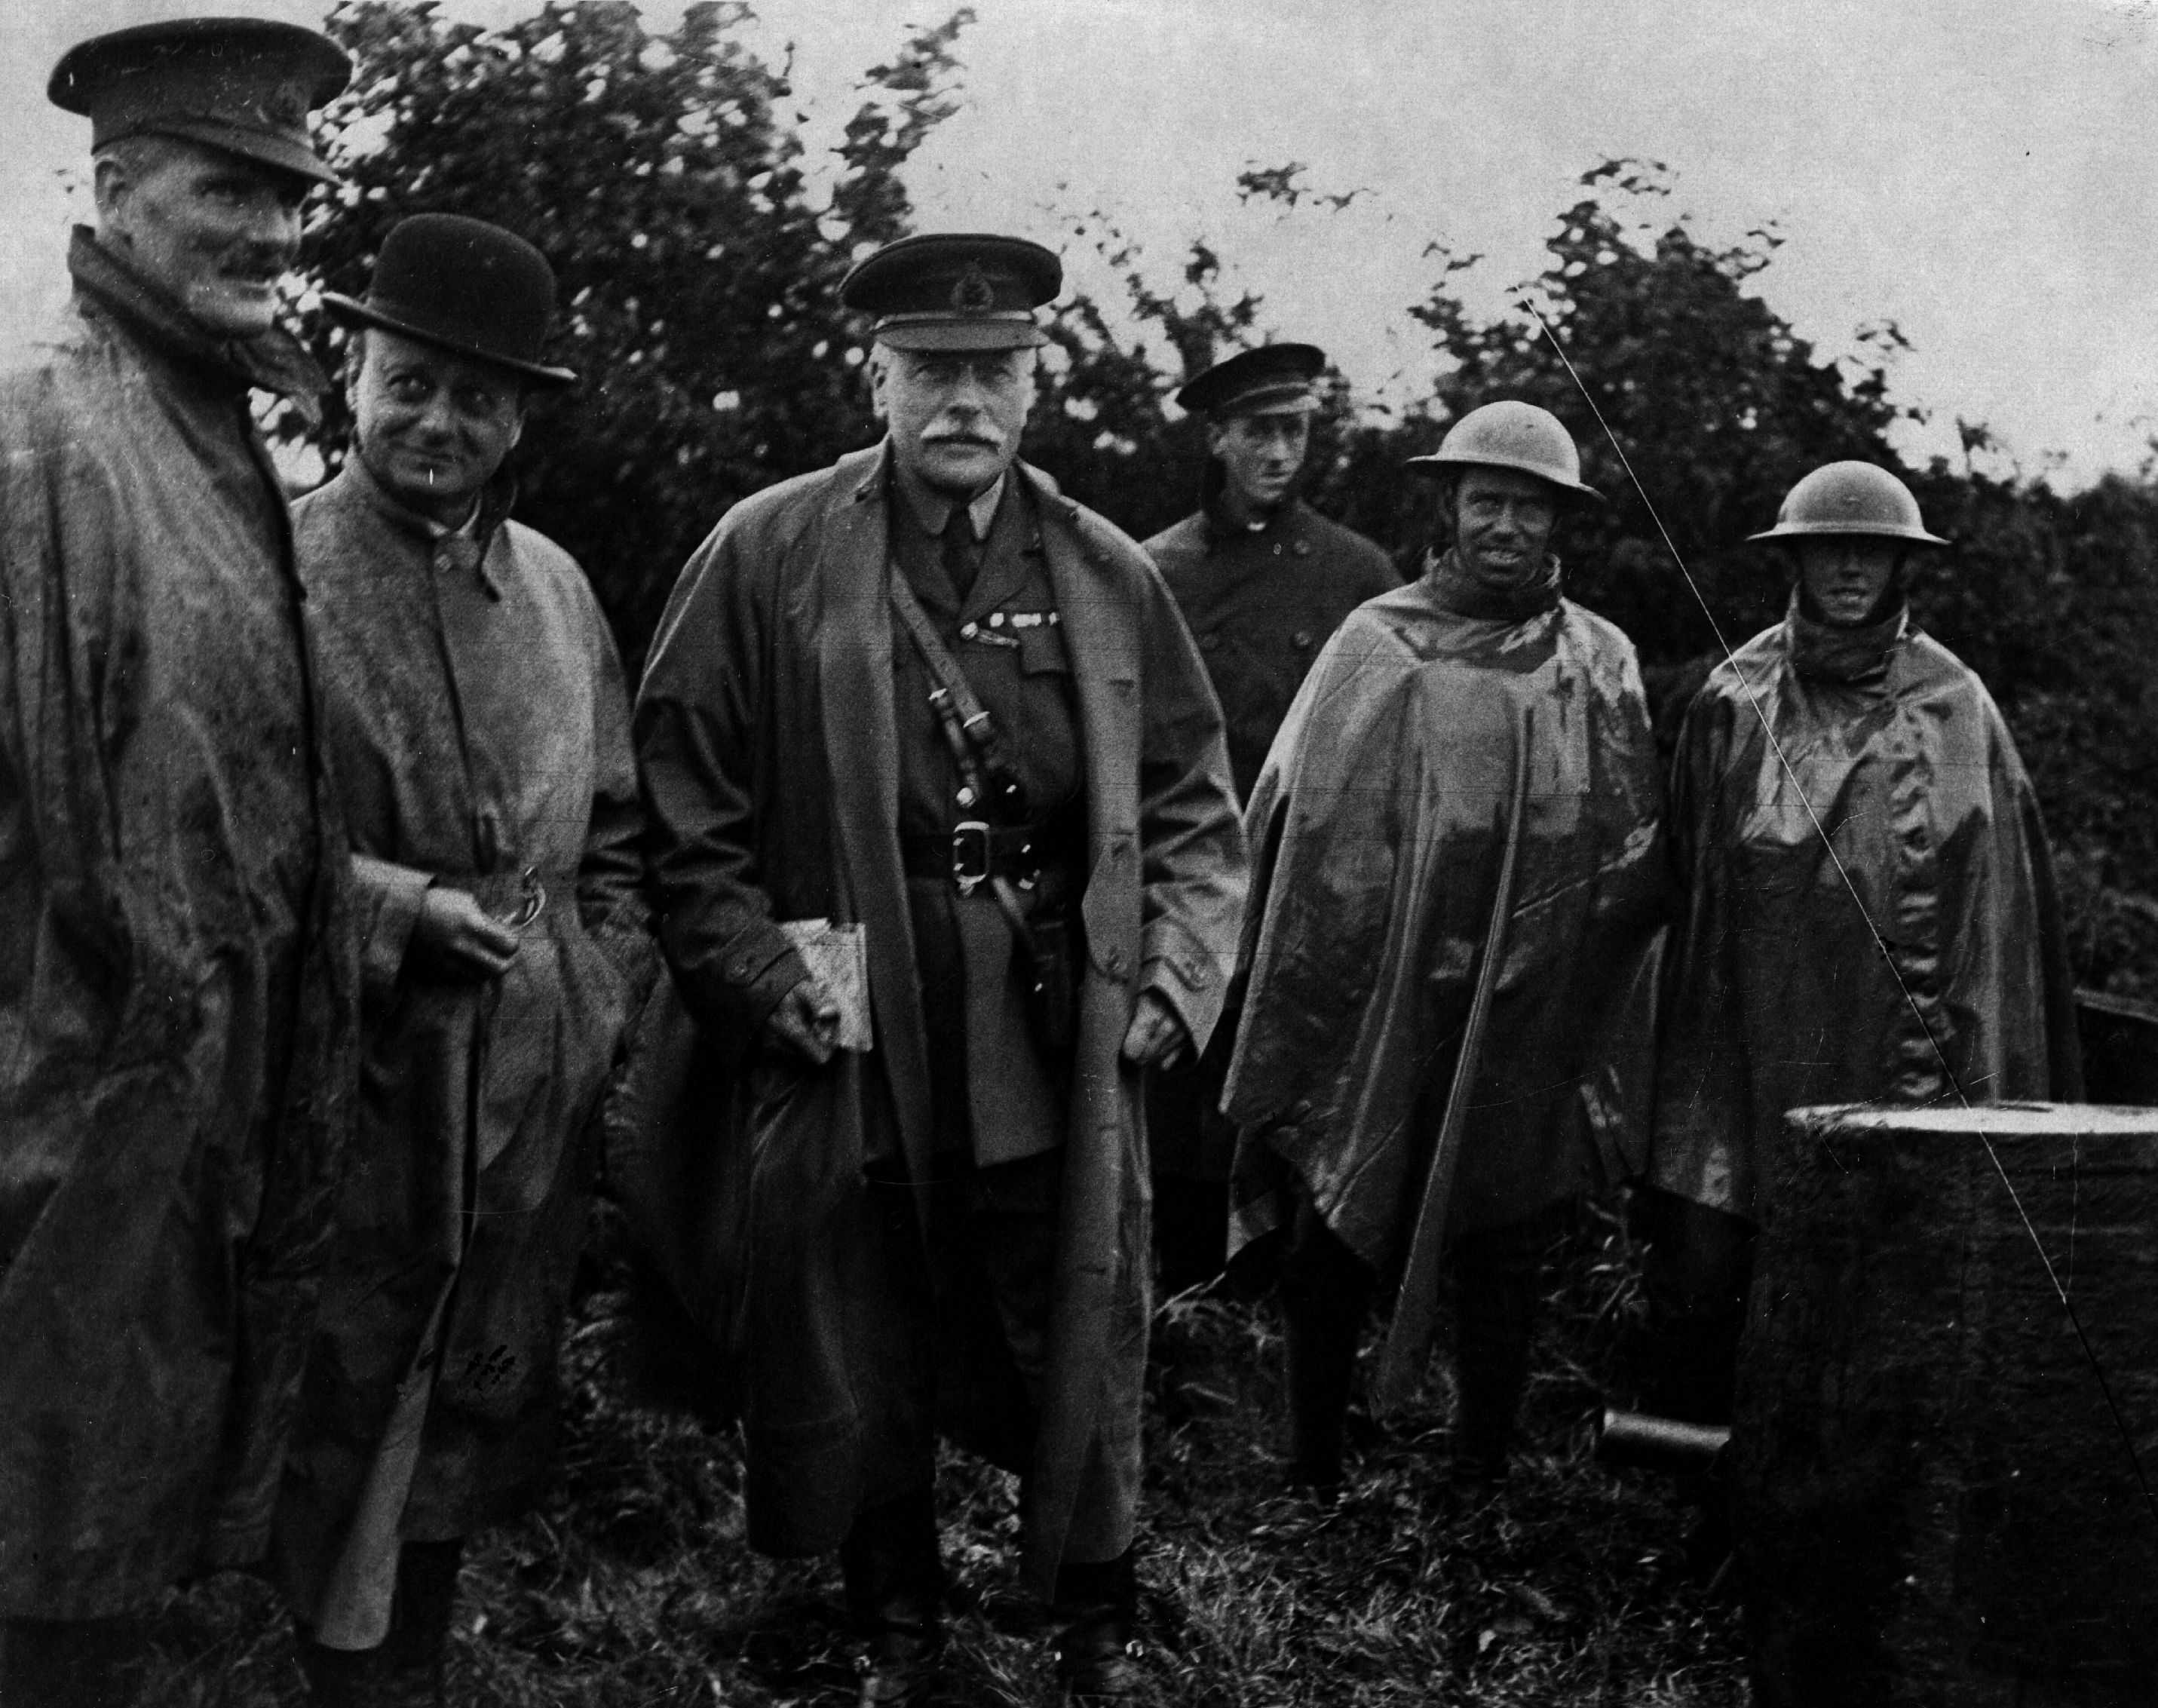 Scottish soldier and Field Marshal Douglas Haig (1861 - 1928) visiting the troops during the First World War. (Central Press/Getty Images)